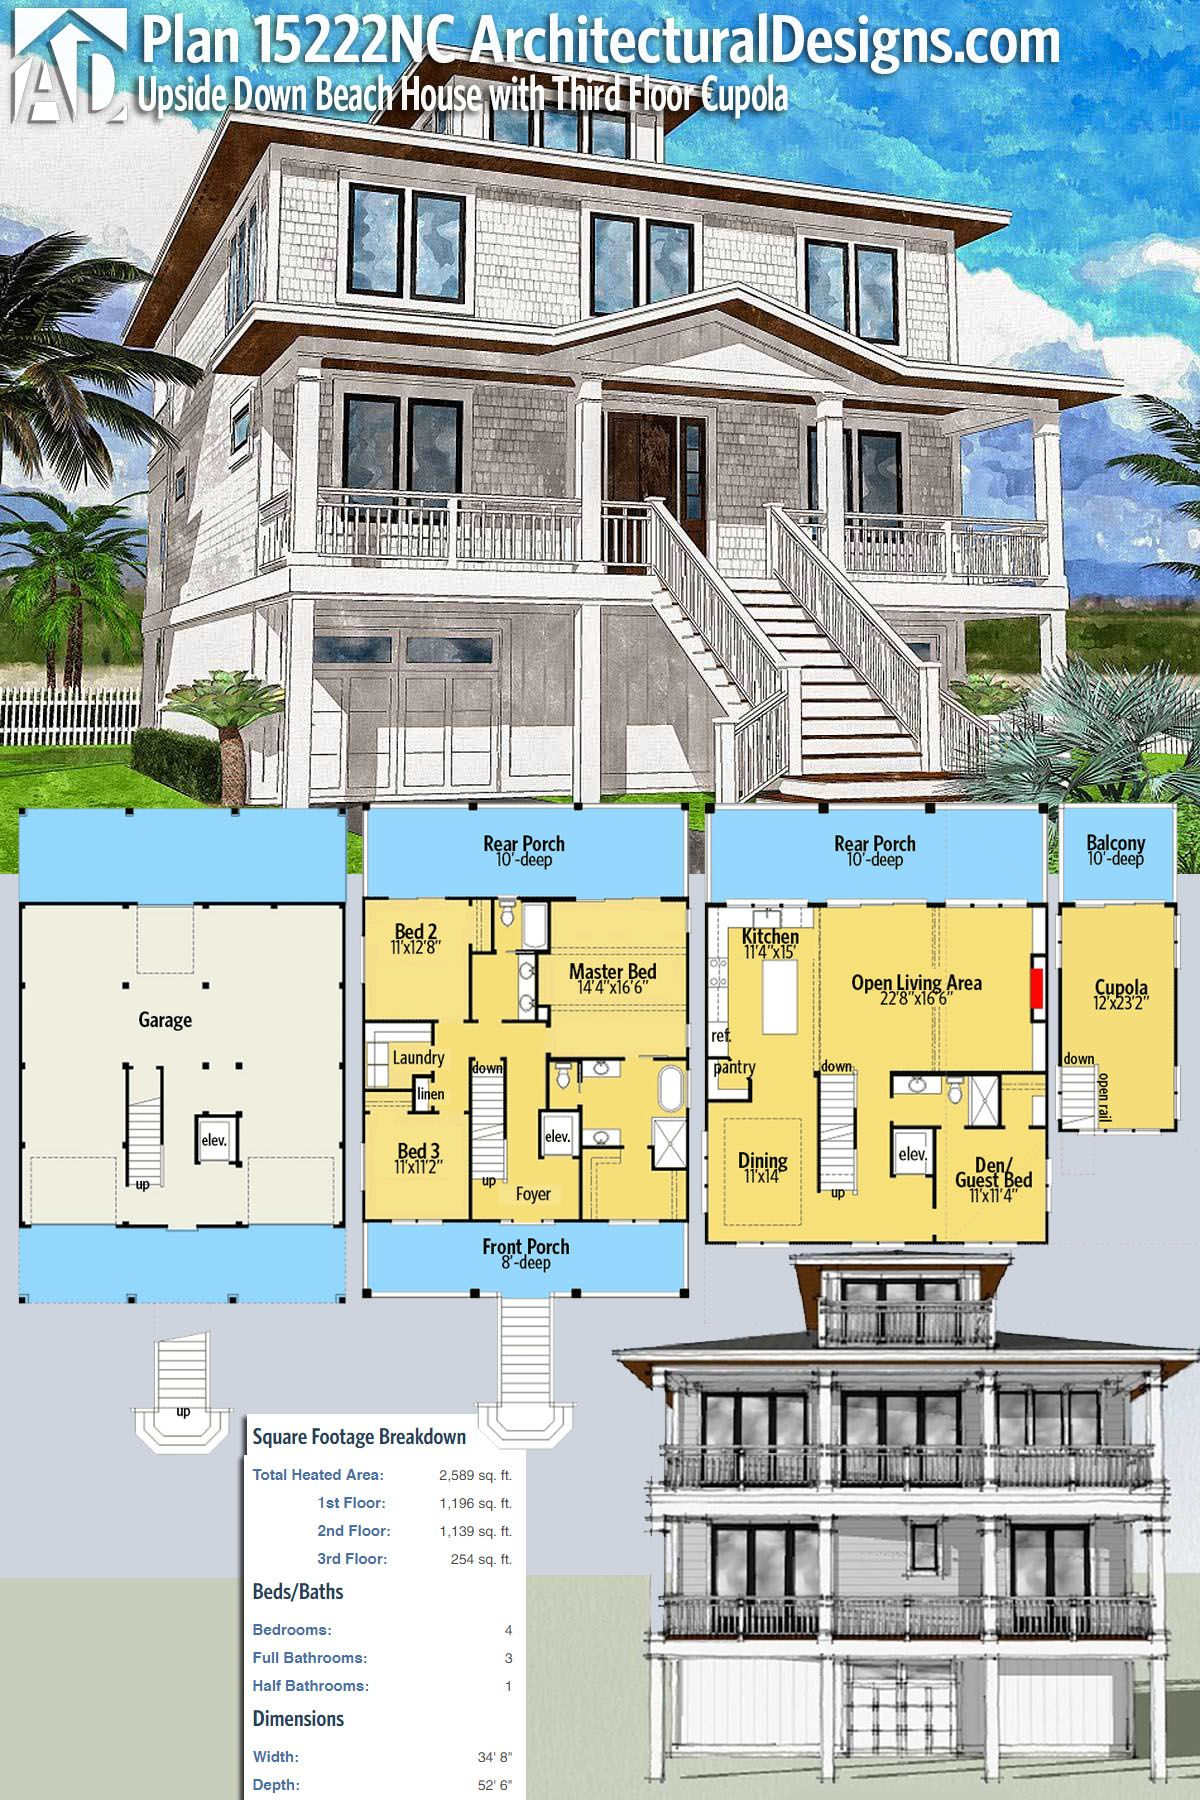 Plan 15222nc Upside Down Beach House With Third Floor Cupola Beach House Floor Plans Coastal House Plans Beach House Plans